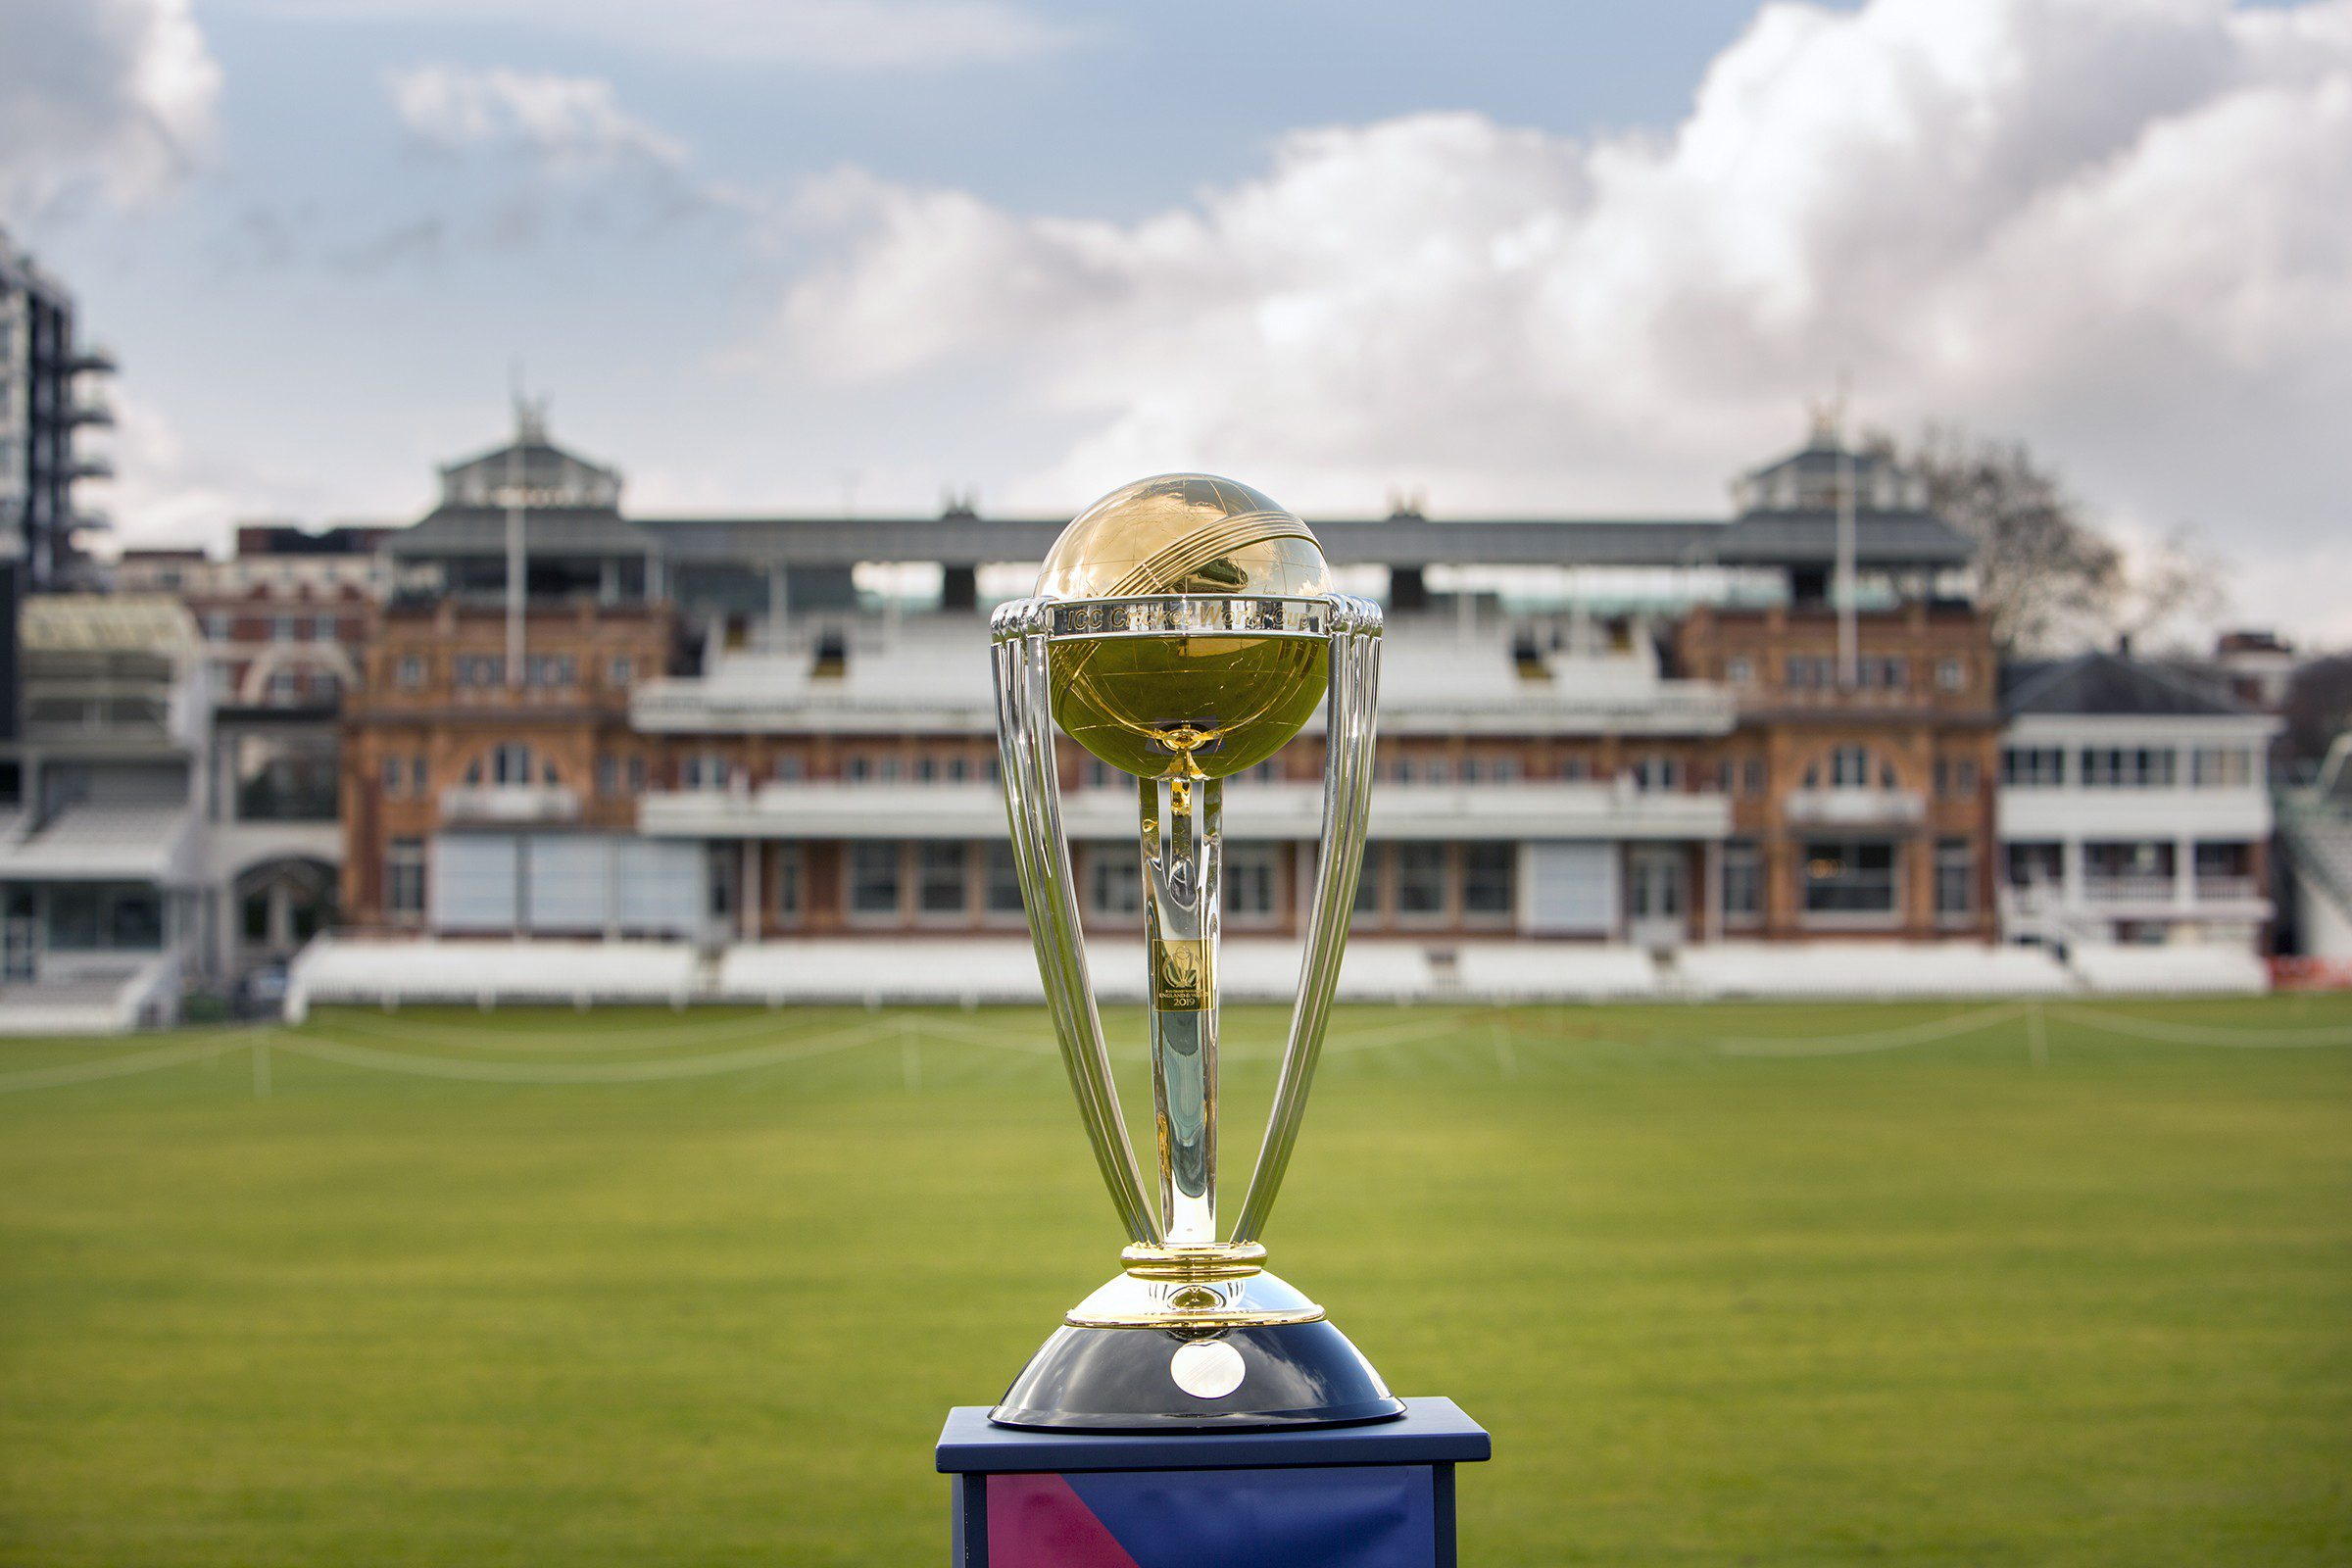 Who will win the Cricket World cup? Predict now